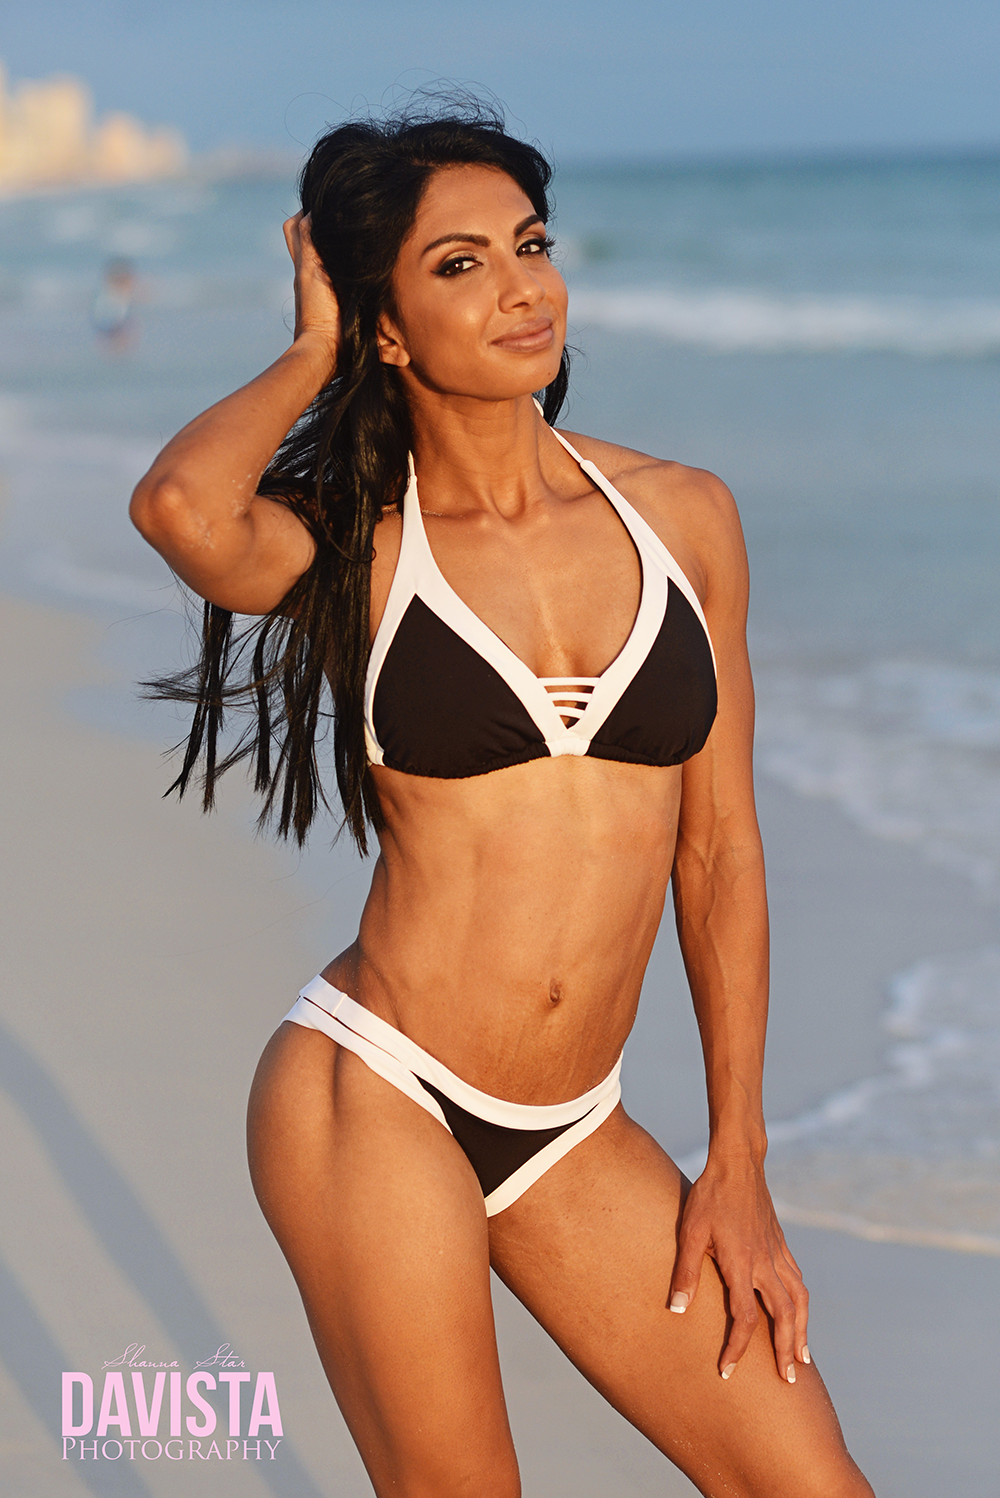 bikini competitor beach photo shoot